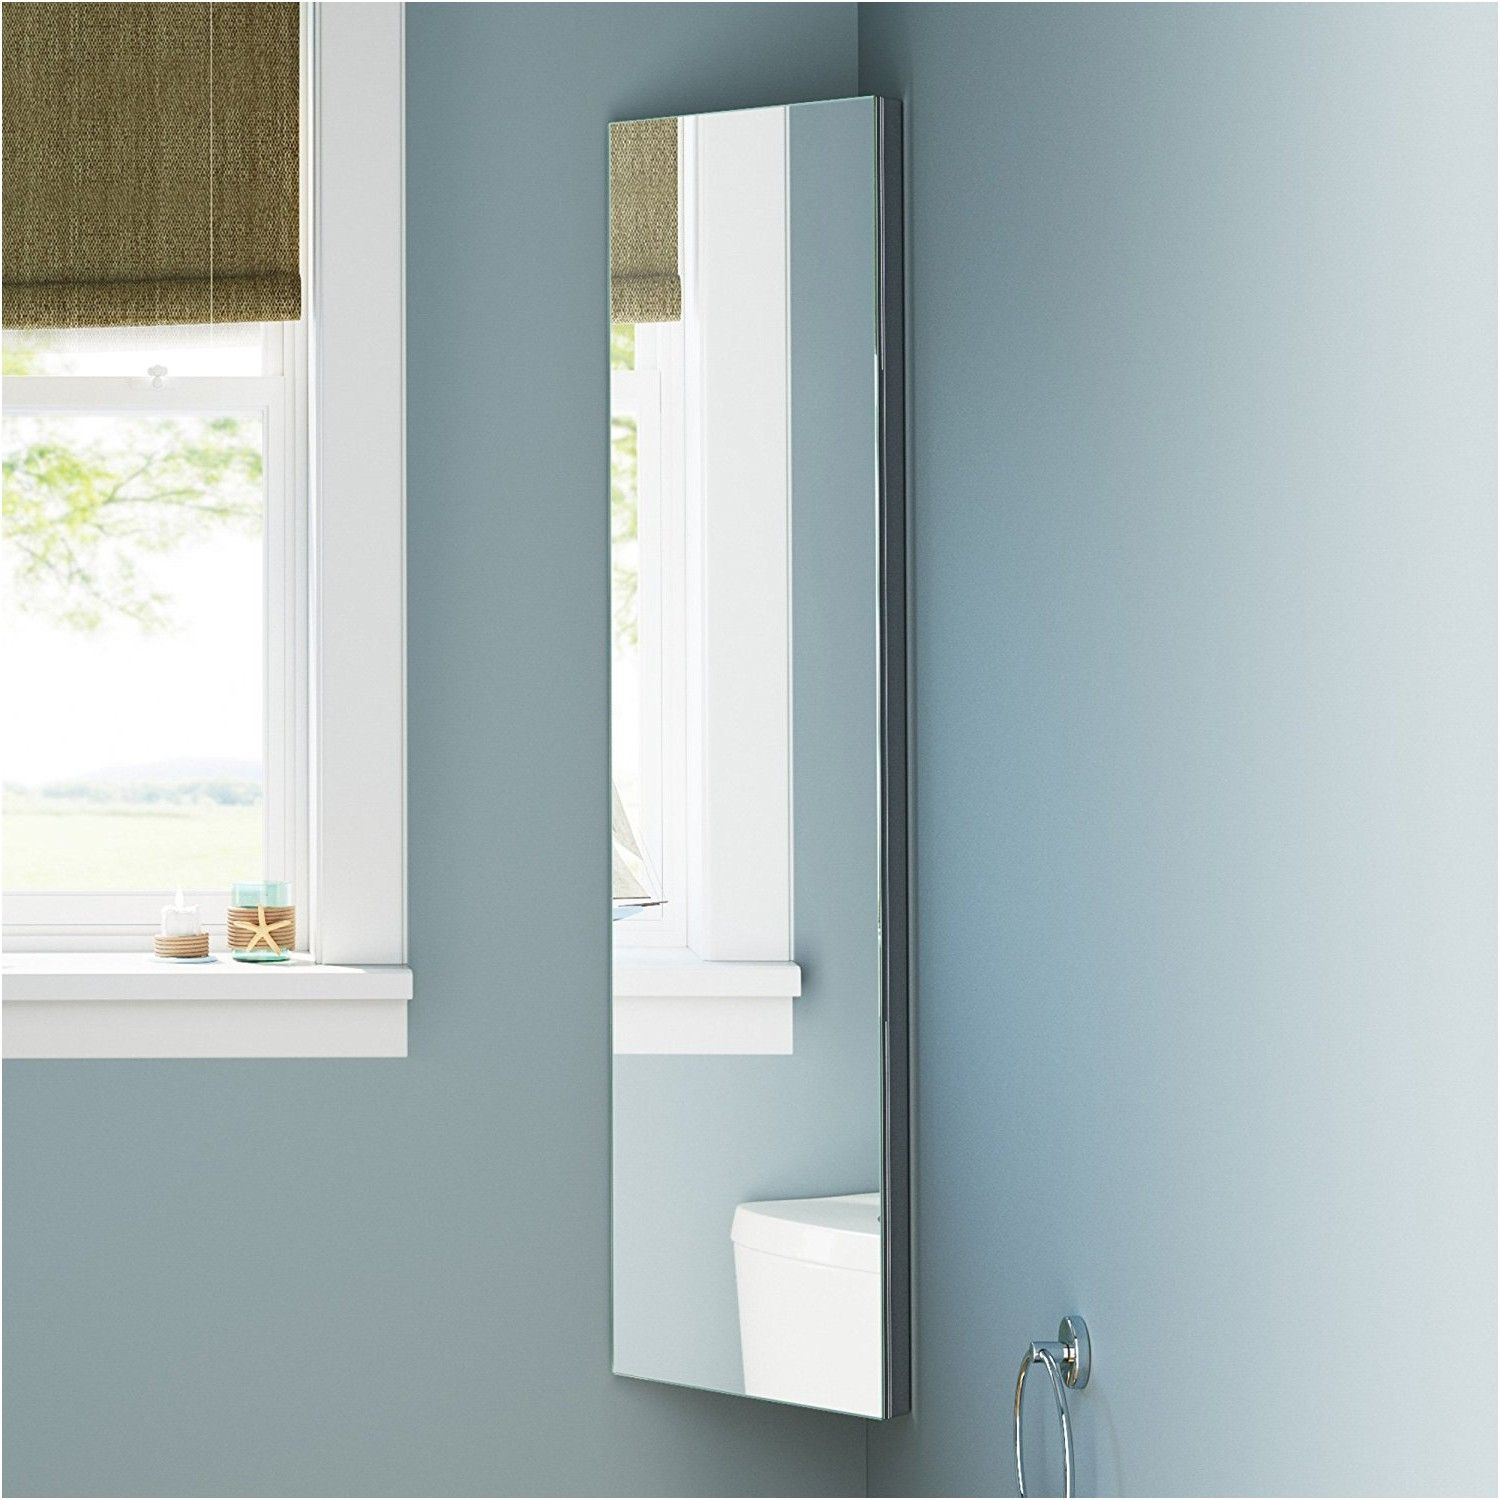 Zanex Bevelled Edge 1200mm Stainless Steel Mirror Bathroom